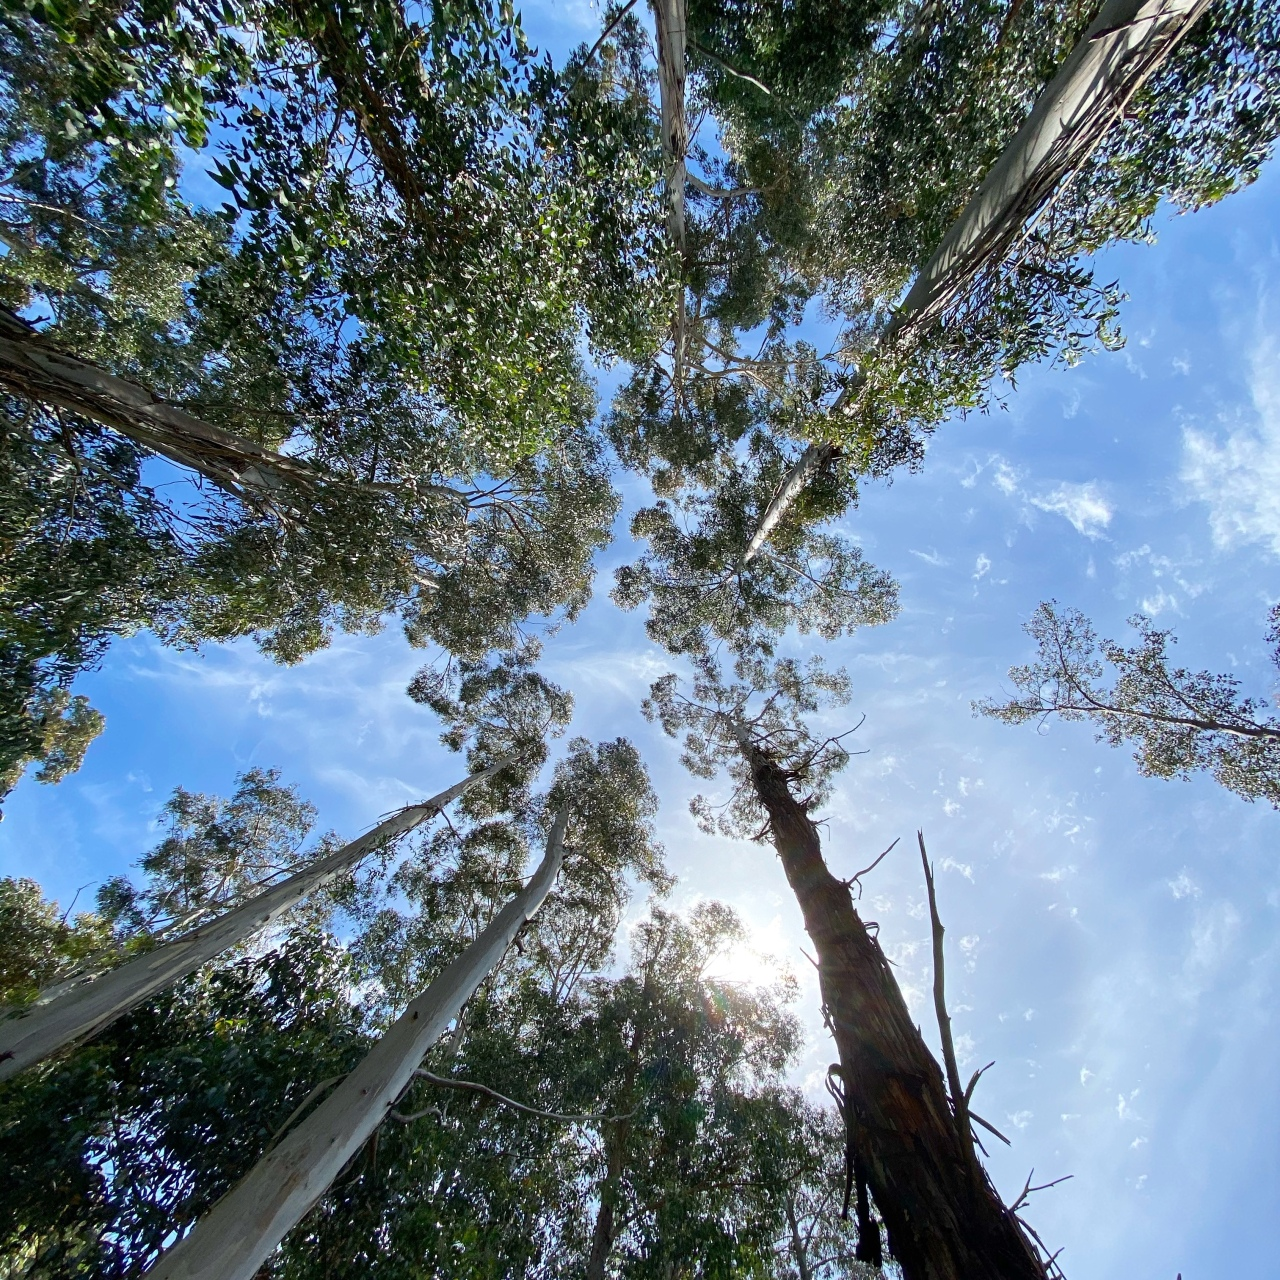 Large trees pointing upwards towards the light blue sky with the sun peeking behind some of the tree tops in the outer circle